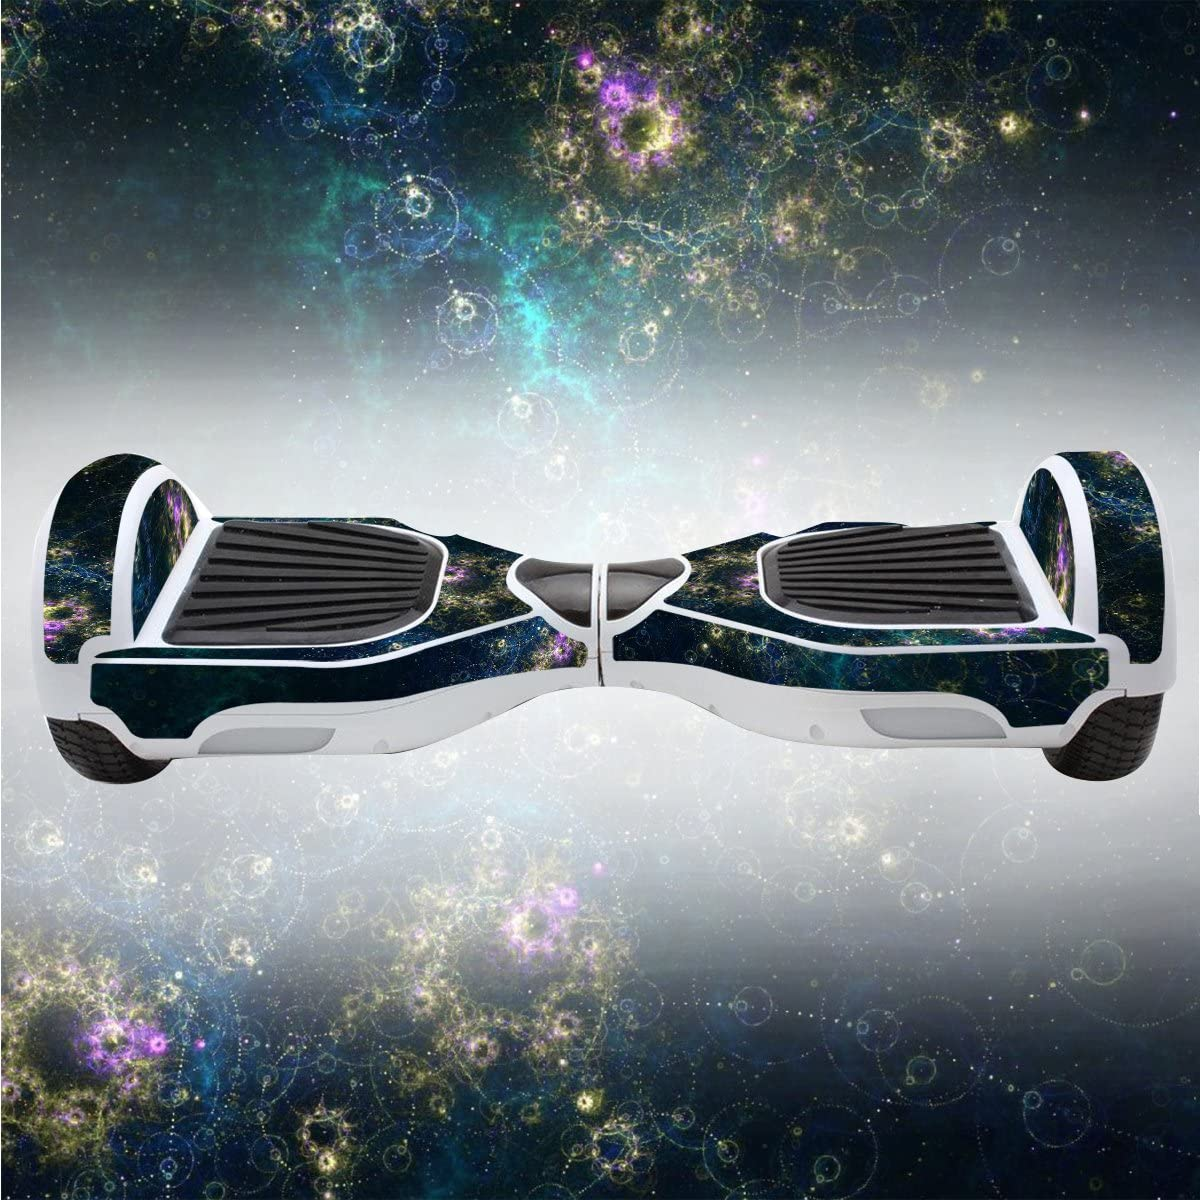 Skin for Self-Balancing Electric Scooter Smart Protective Cover Vinyl Case for 2 Wheel Scooter Board GameXcel Sticker for Hover Board Decal for Self Balance Mobility Longboard